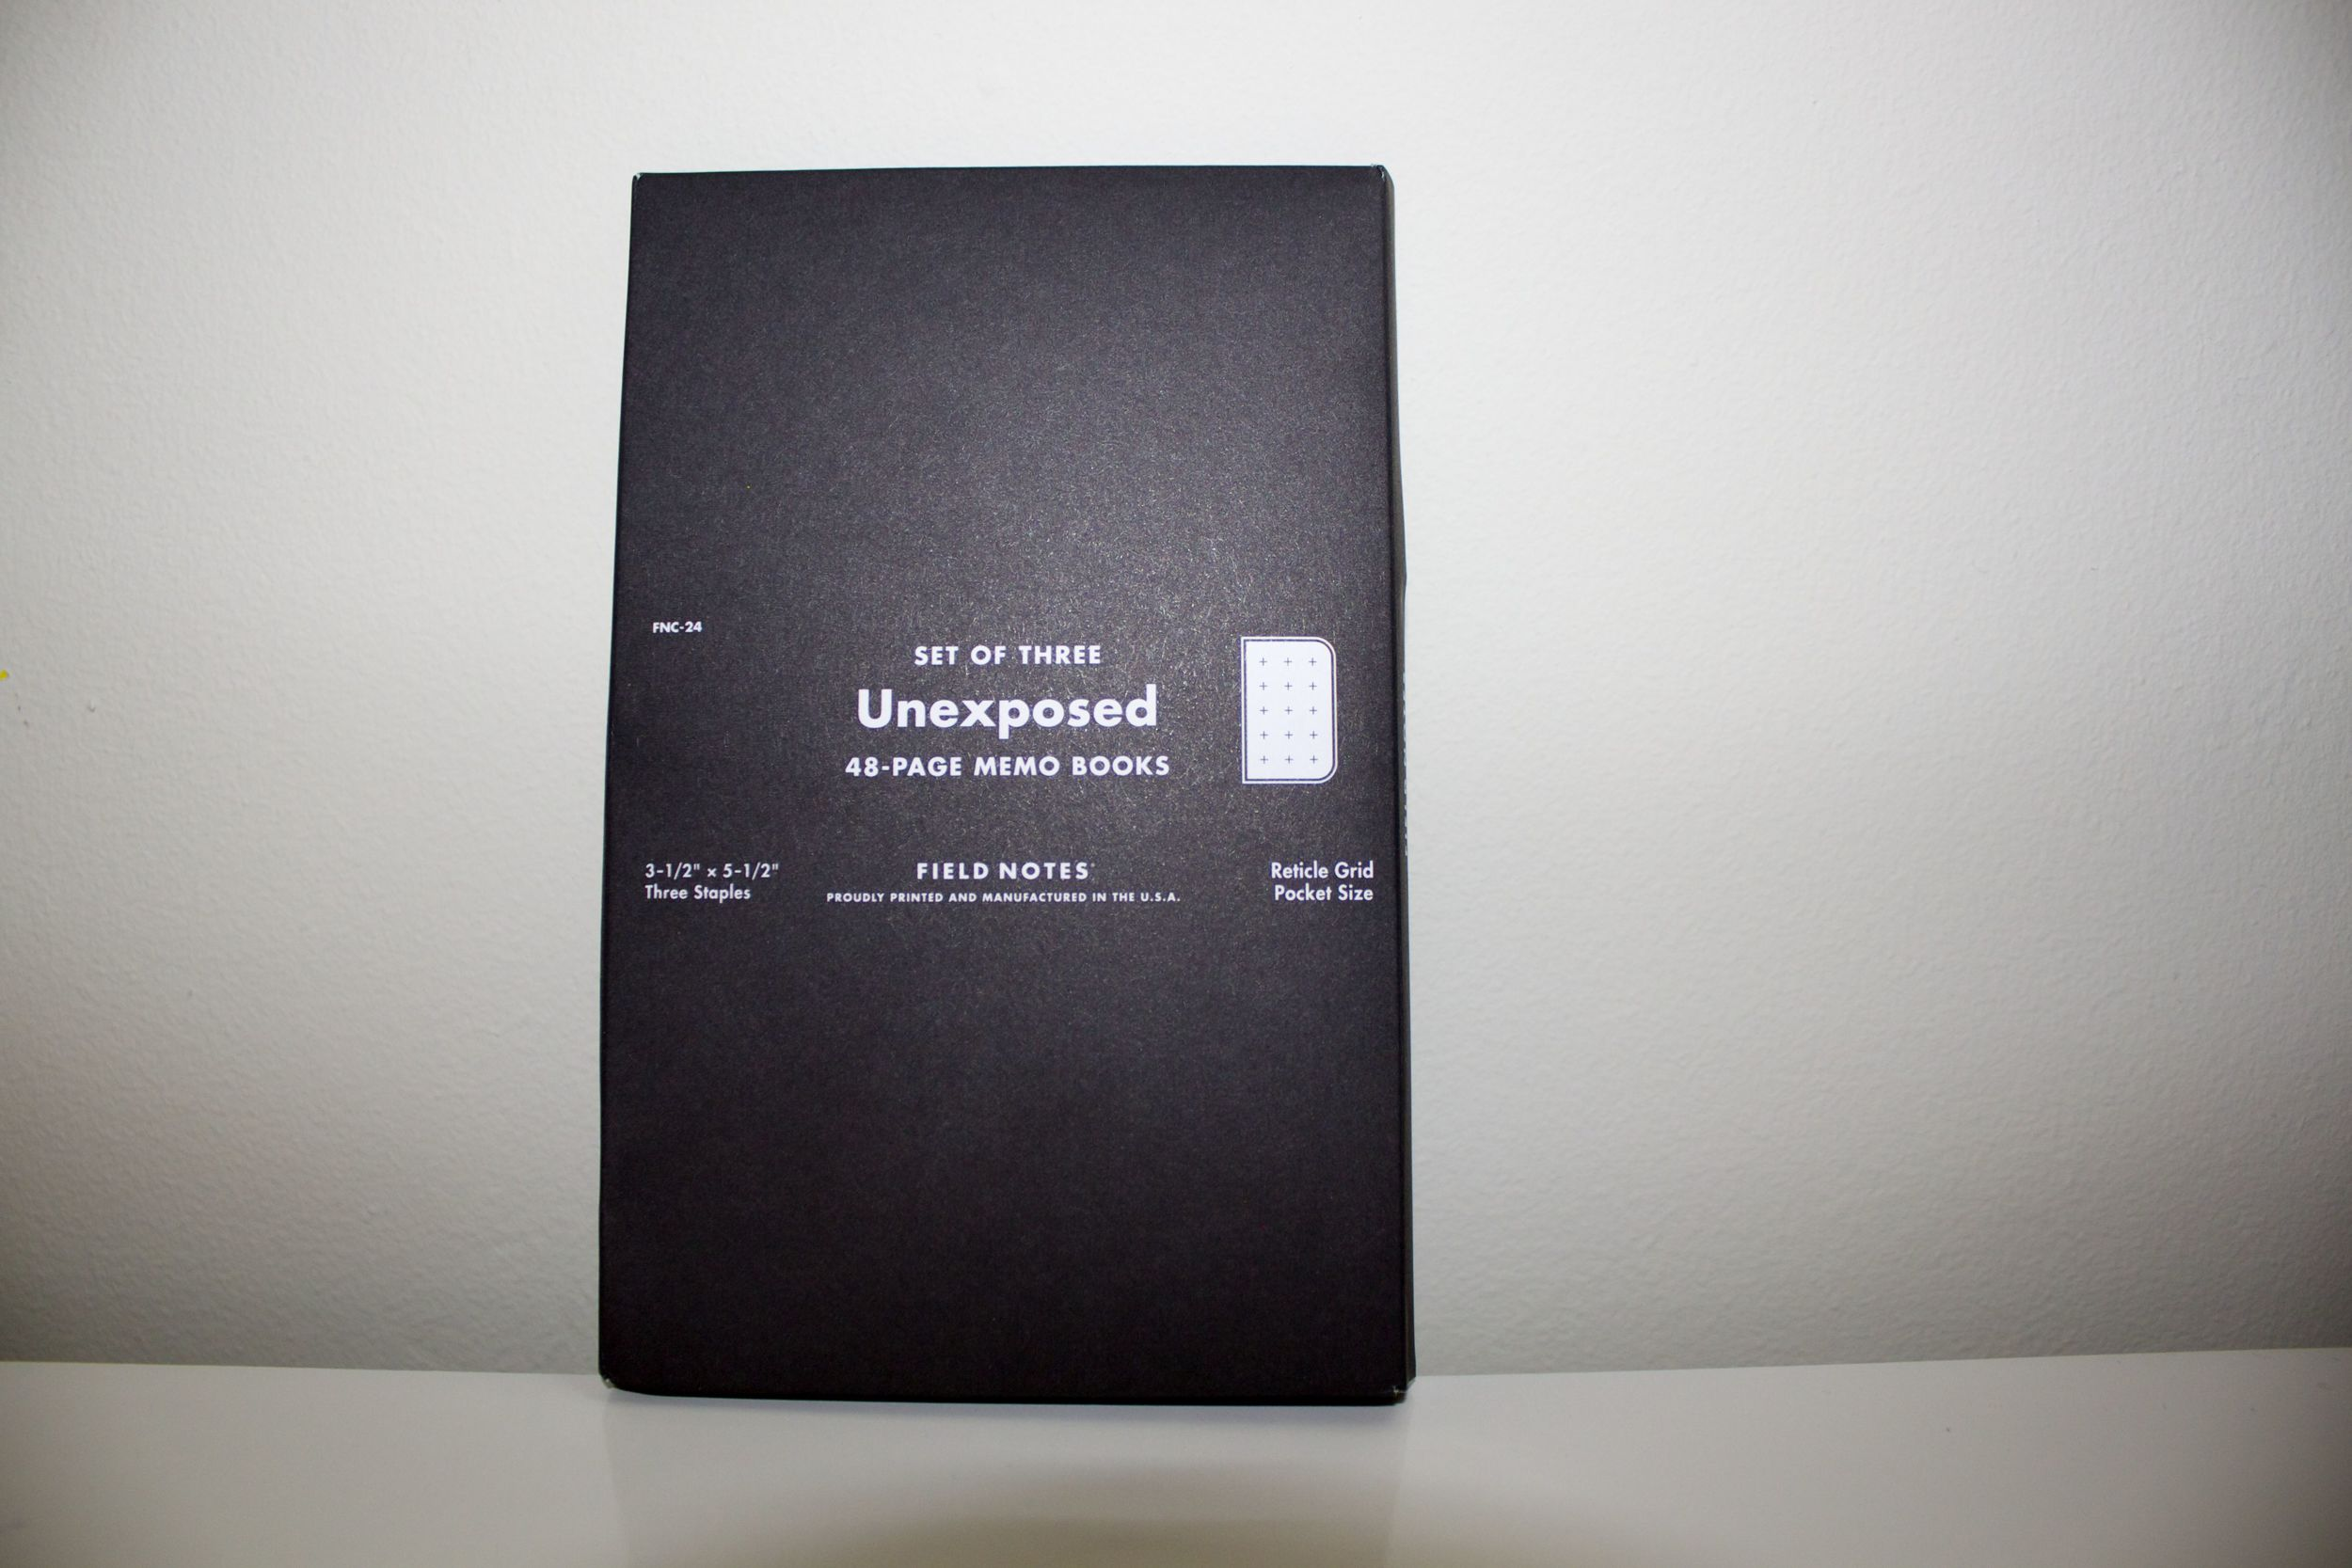 Unexposed packaging